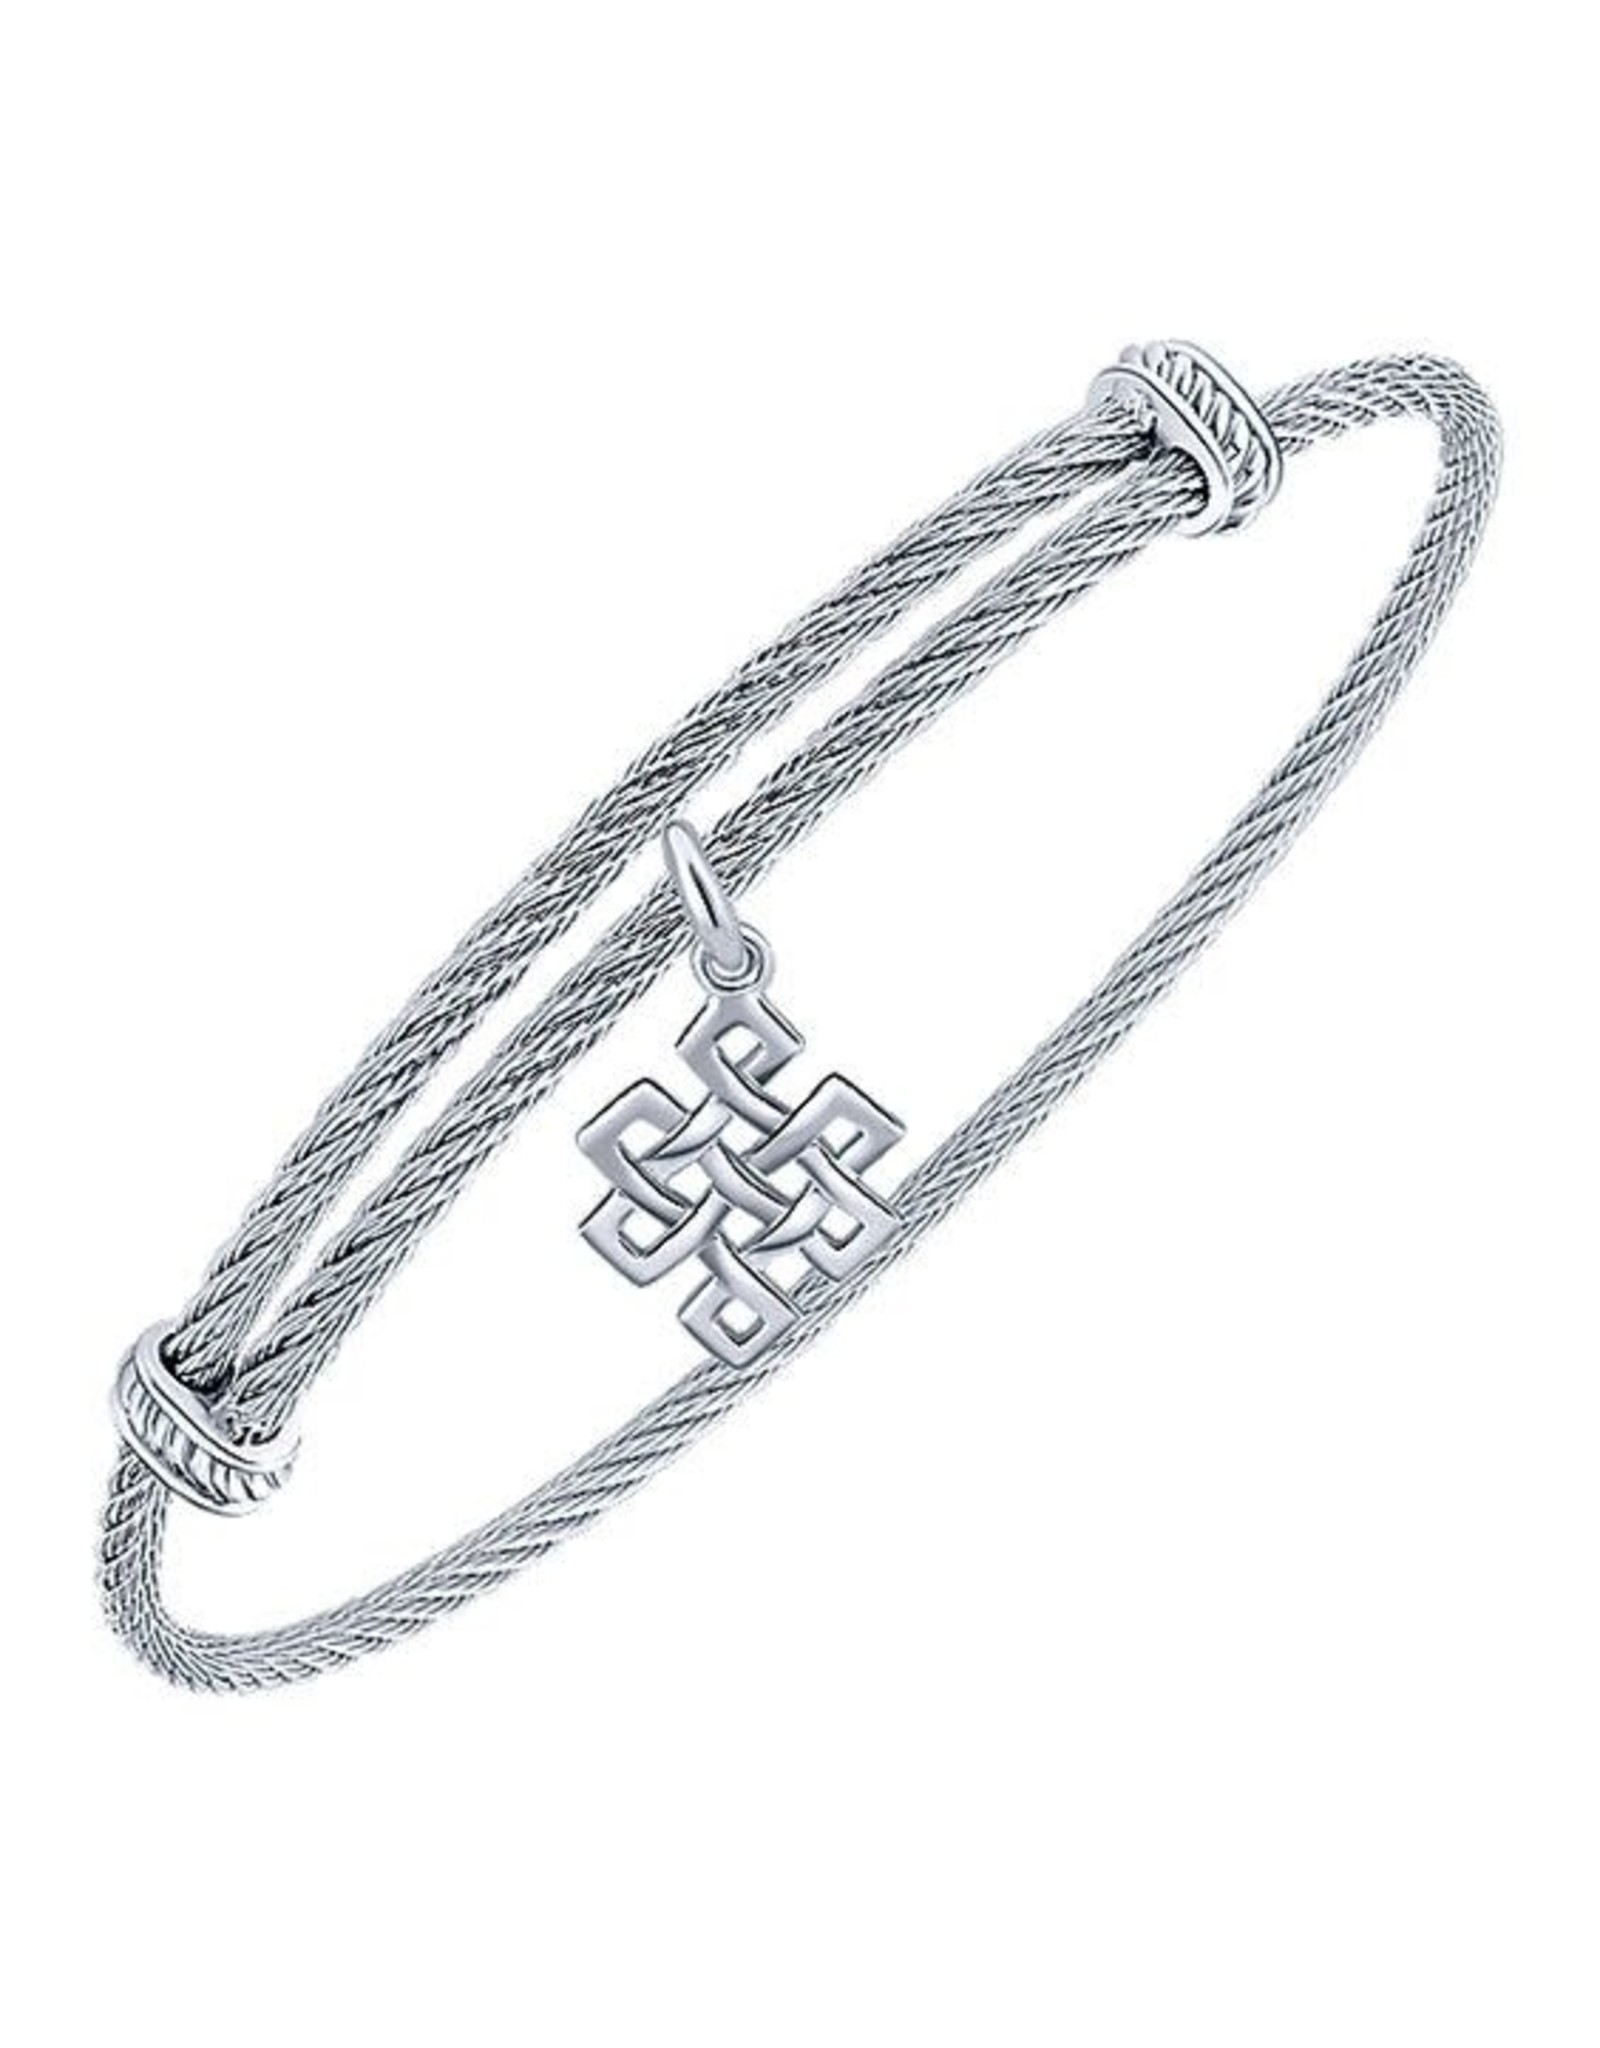 Adjustable Twisted Cable Stainless Steel Bangle Bracelet with Sterling Silver Endless Knot Charm